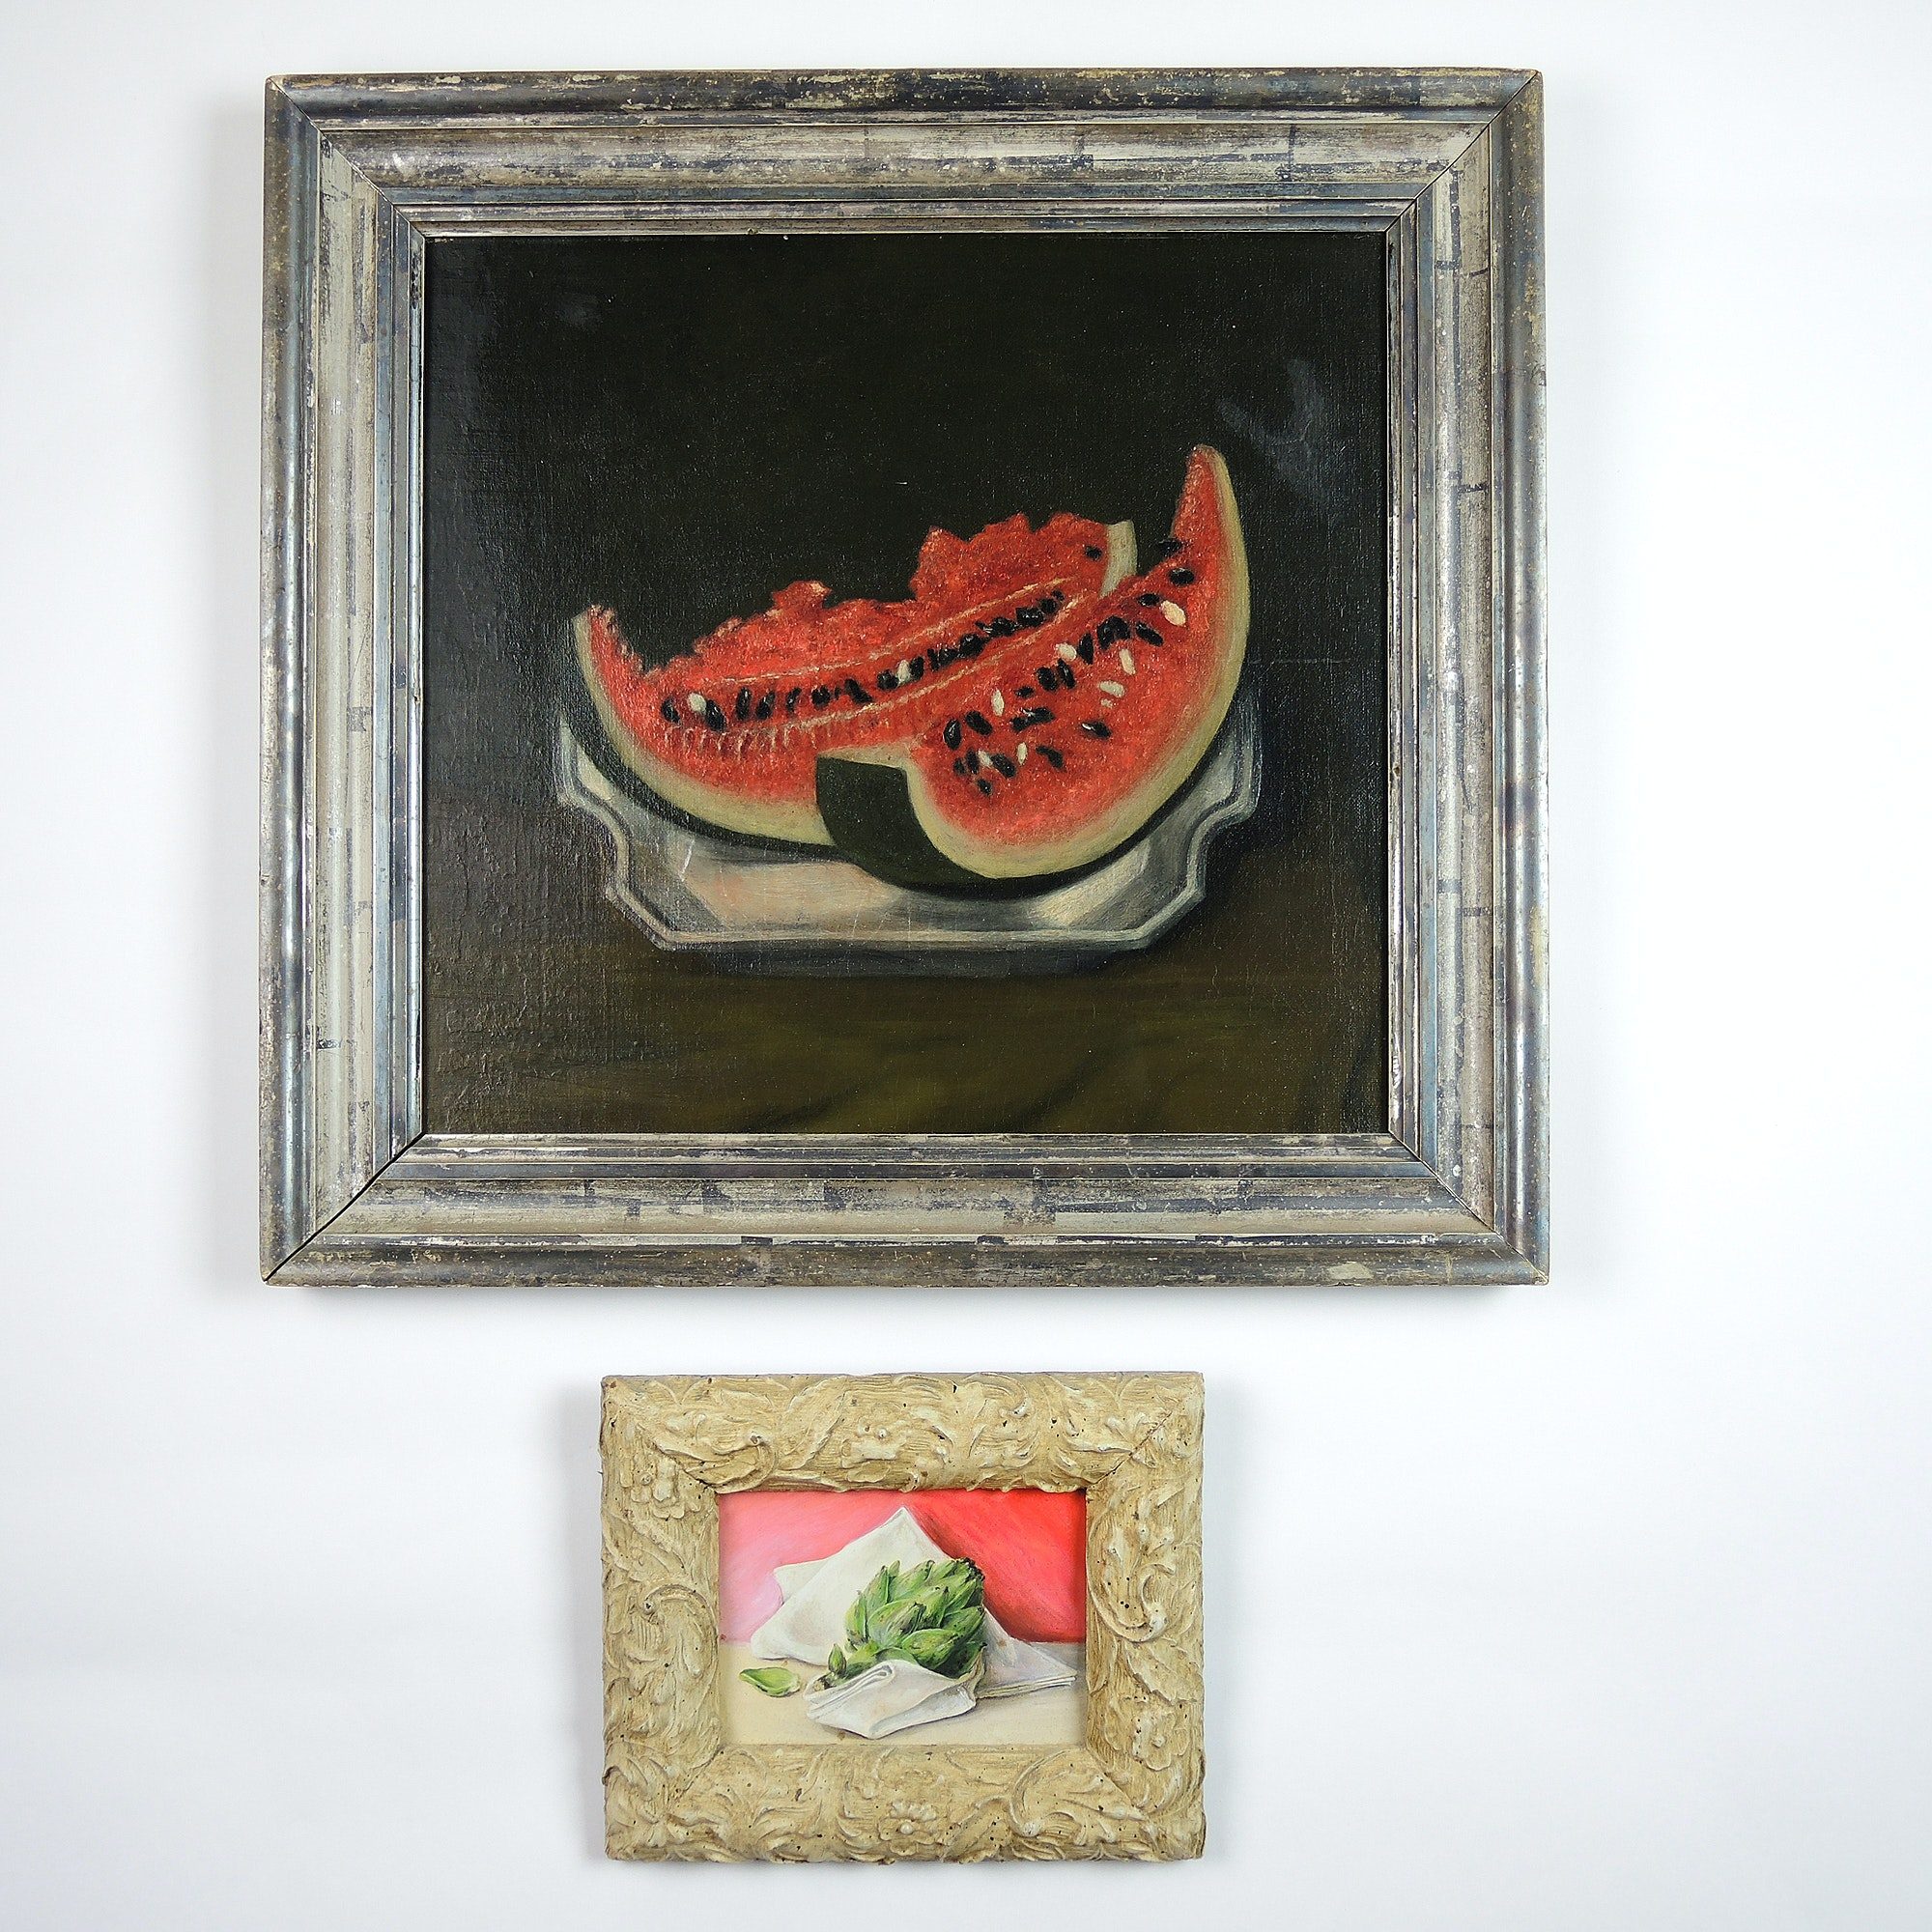 Pair of Still Life Paintings on Board After American Folk Style